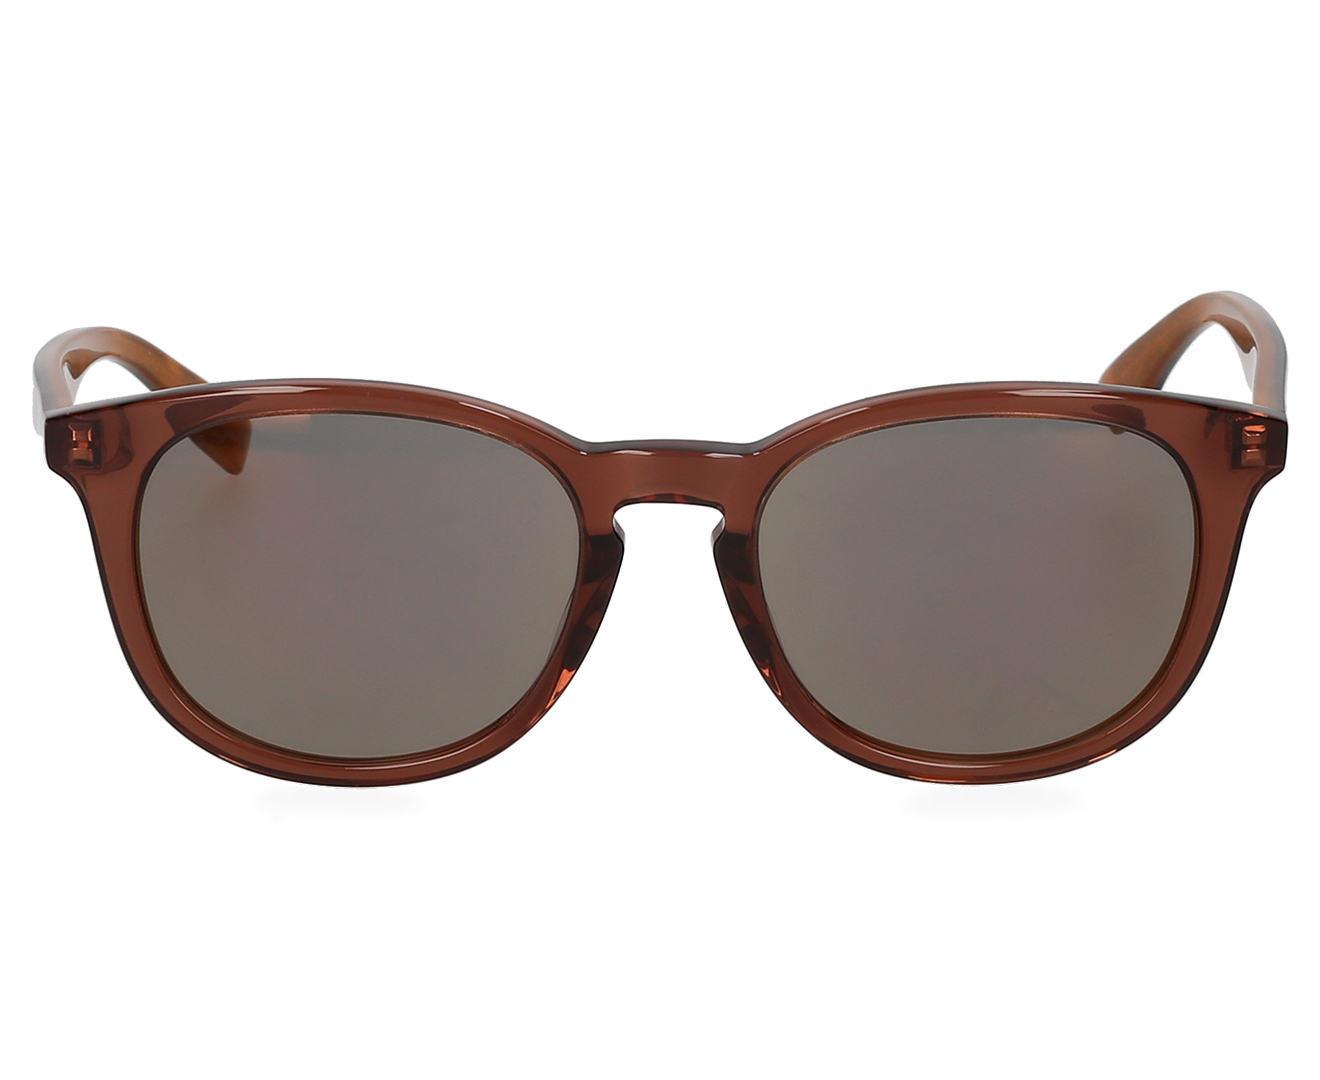 7ed1a635ba23 BOSS Orange Wayfarer 0278 F S Sunglasses - Brown Havana